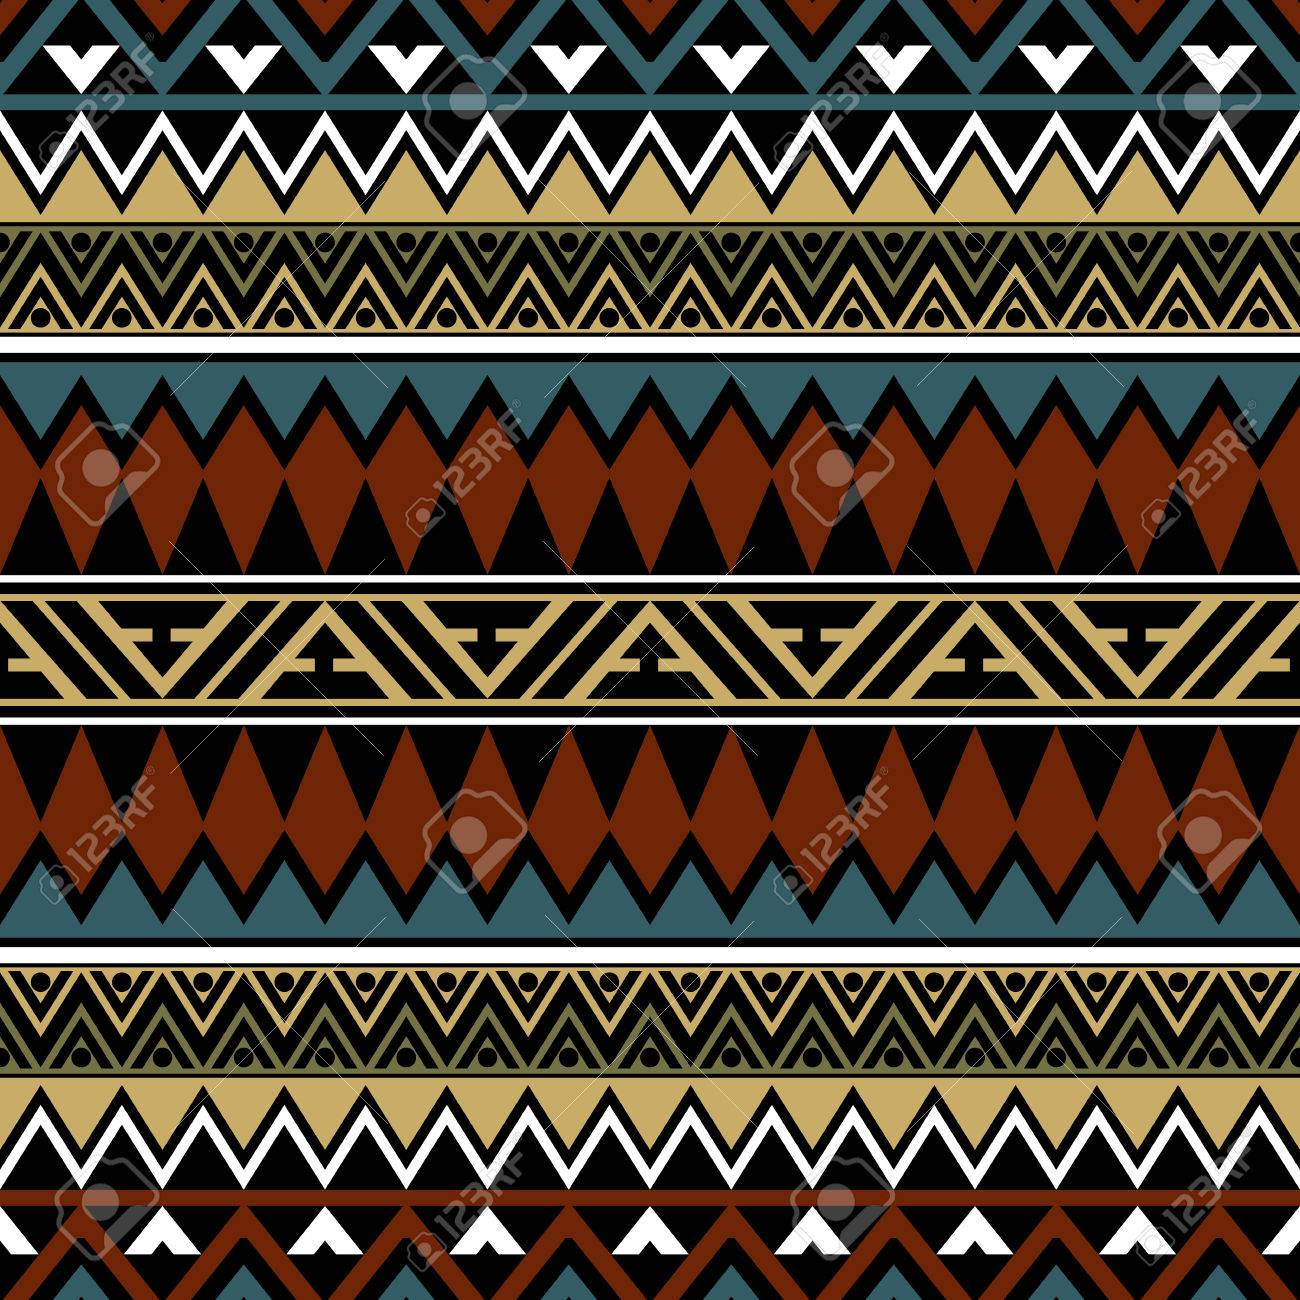 Abstract Seamless Pattern In Boho Chic Style. Aztec Print Template ...